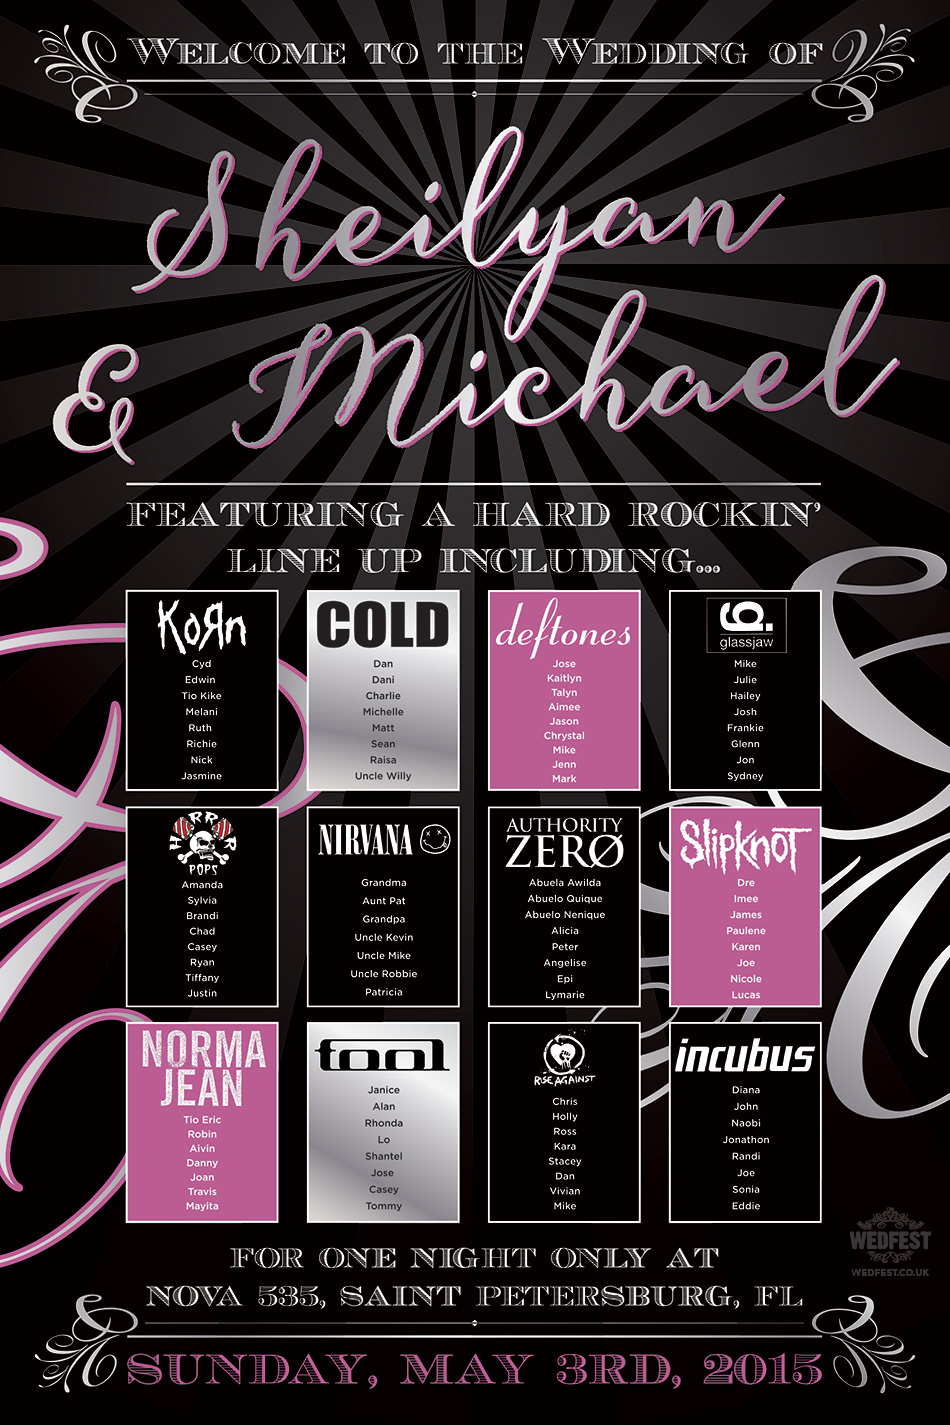 hard rock music wedding table plan